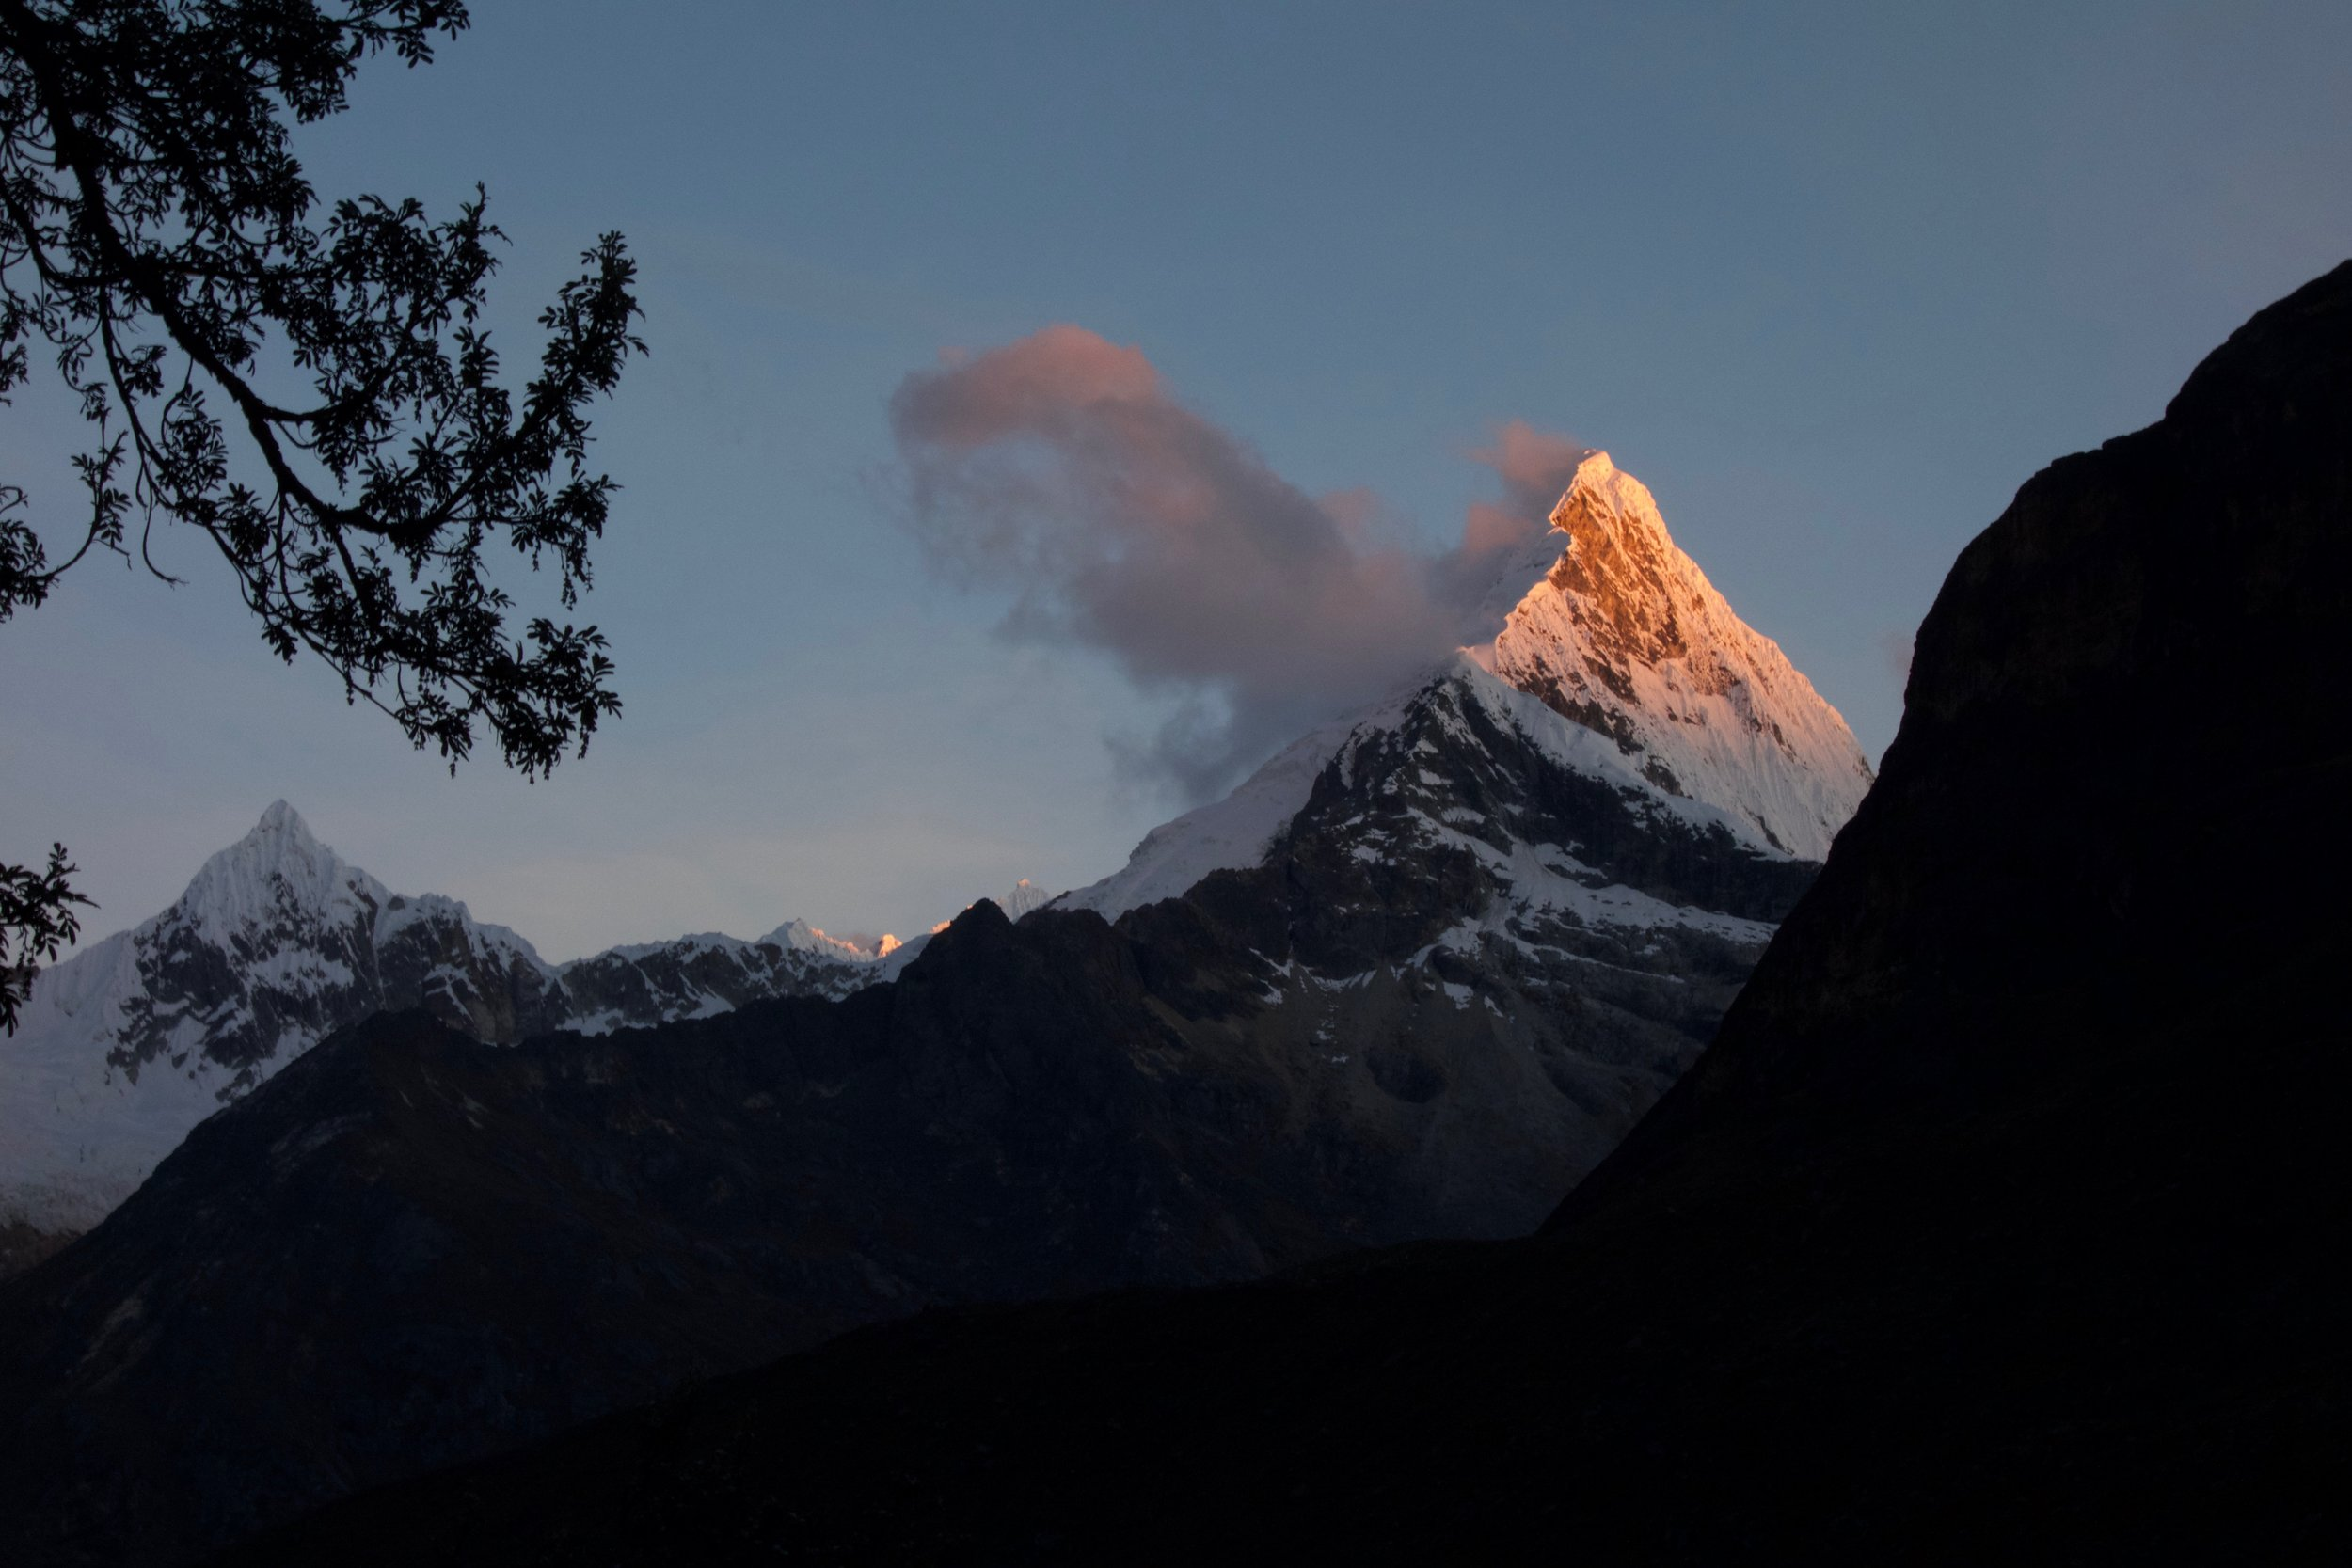 Artesonraju (the Paramount Pictures Peak) from base camp at sunset